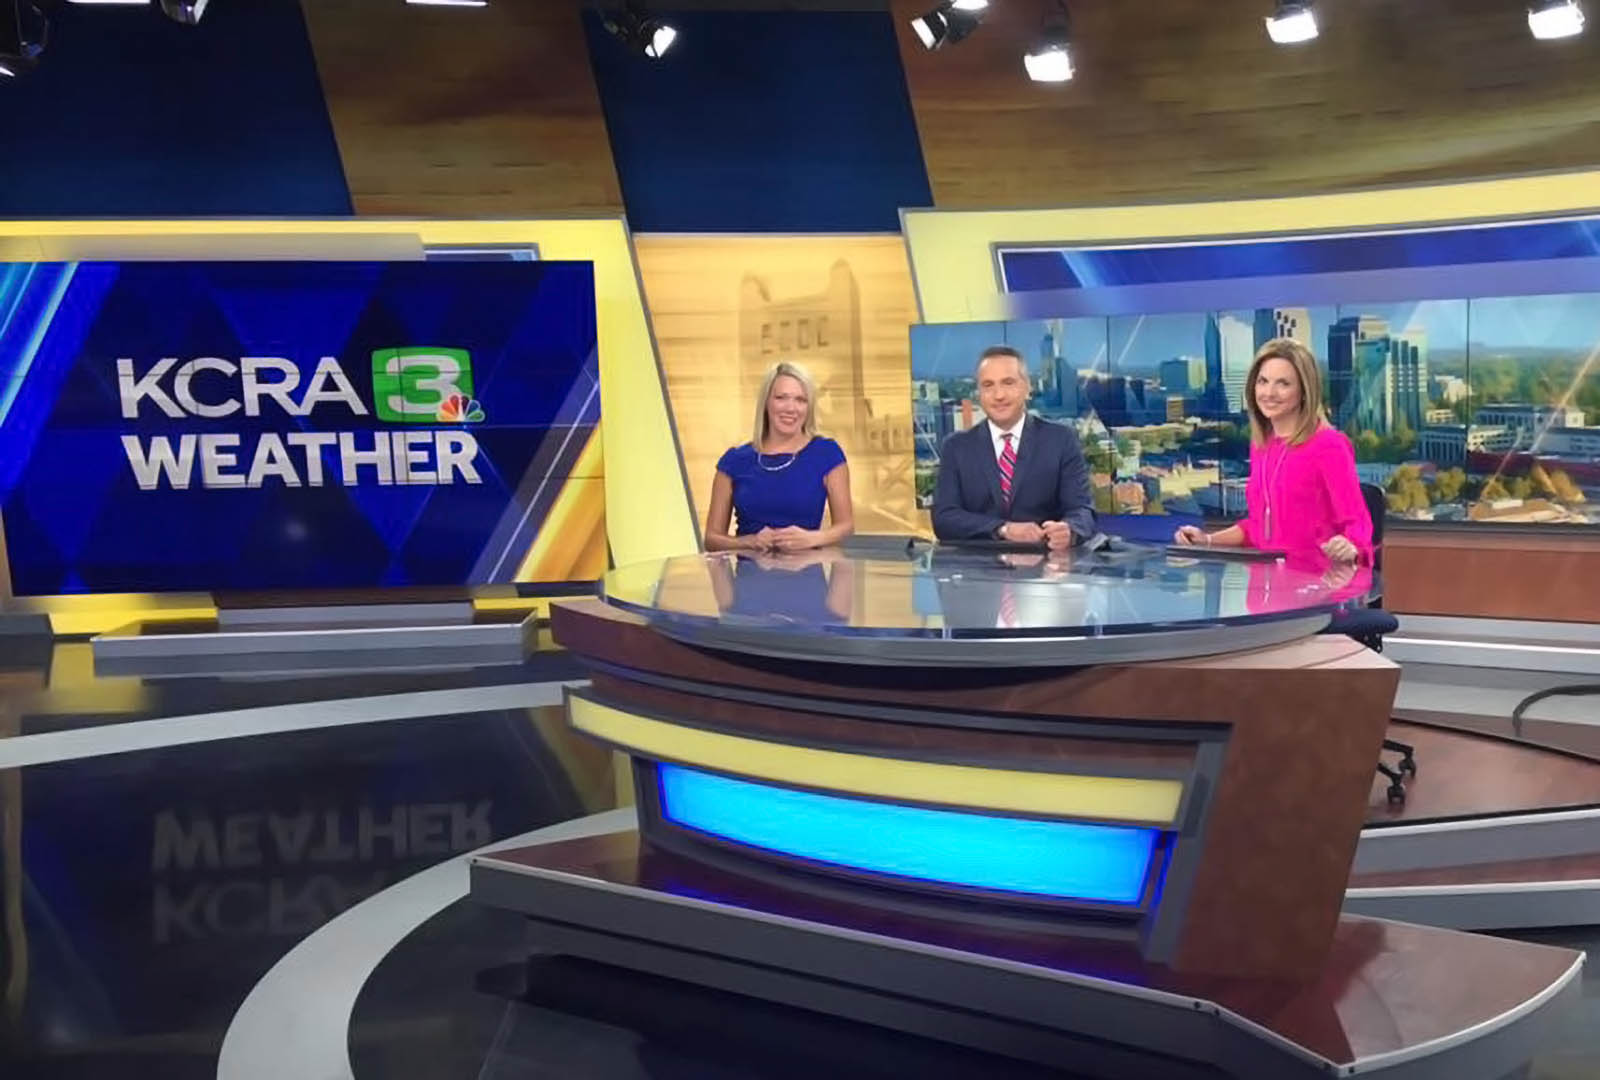 KCRA 3 News weather at Coverage Studio